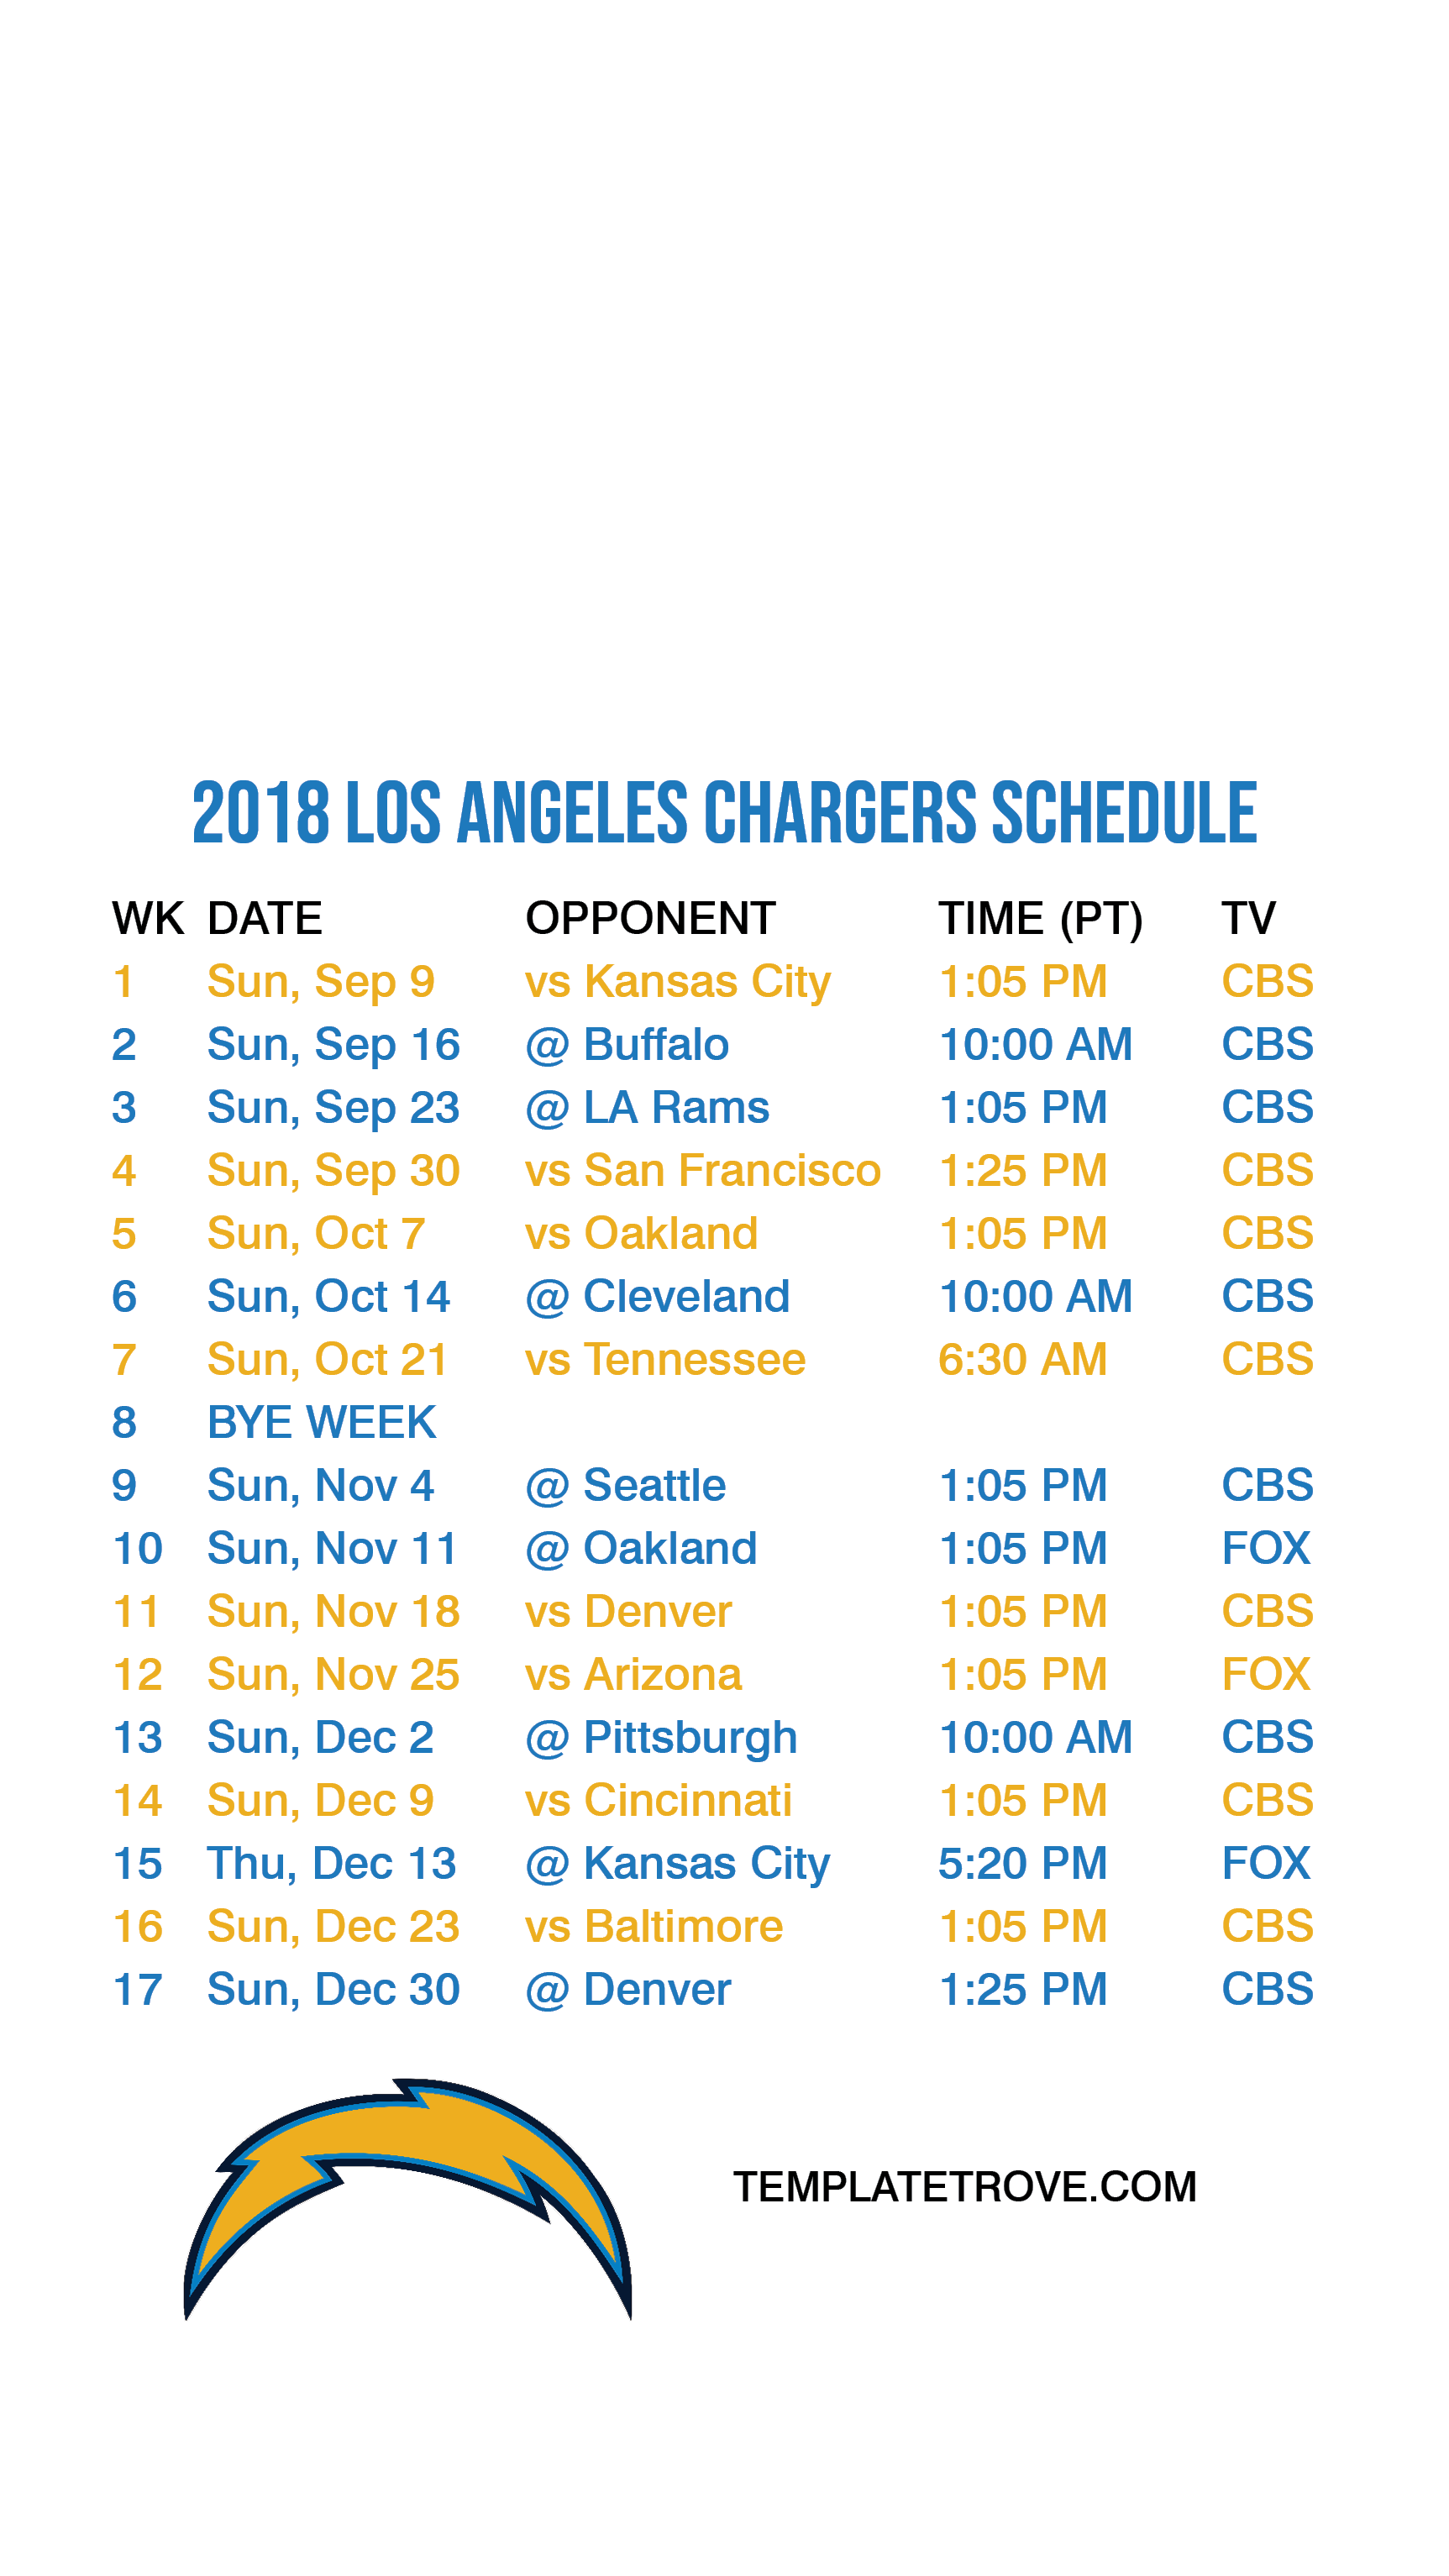 2018-2019 Los Angeles Chargers Lock Screen Schedule for